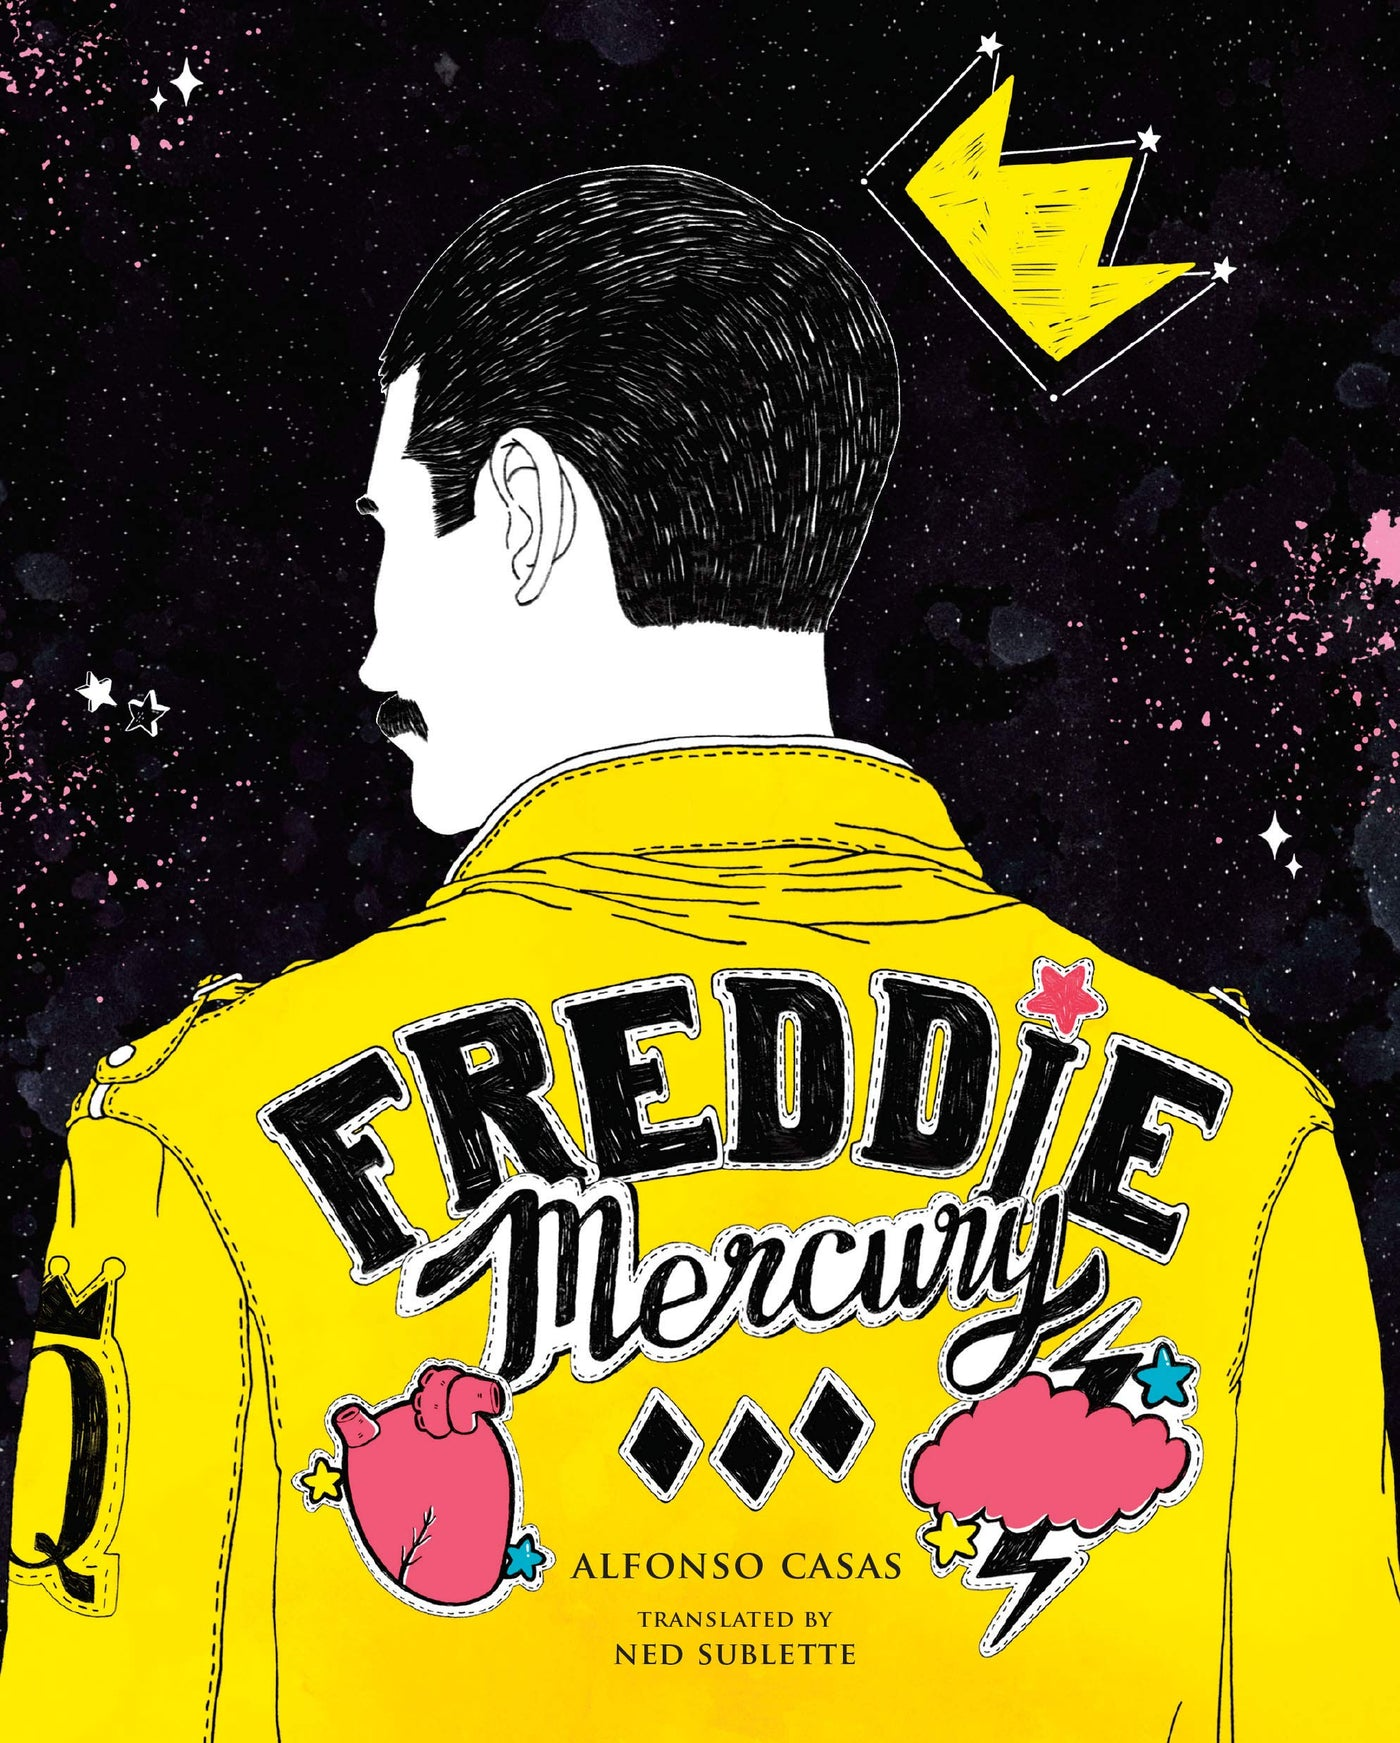 Freddie Mercury: An Illustrated Life by Alfonso Casas